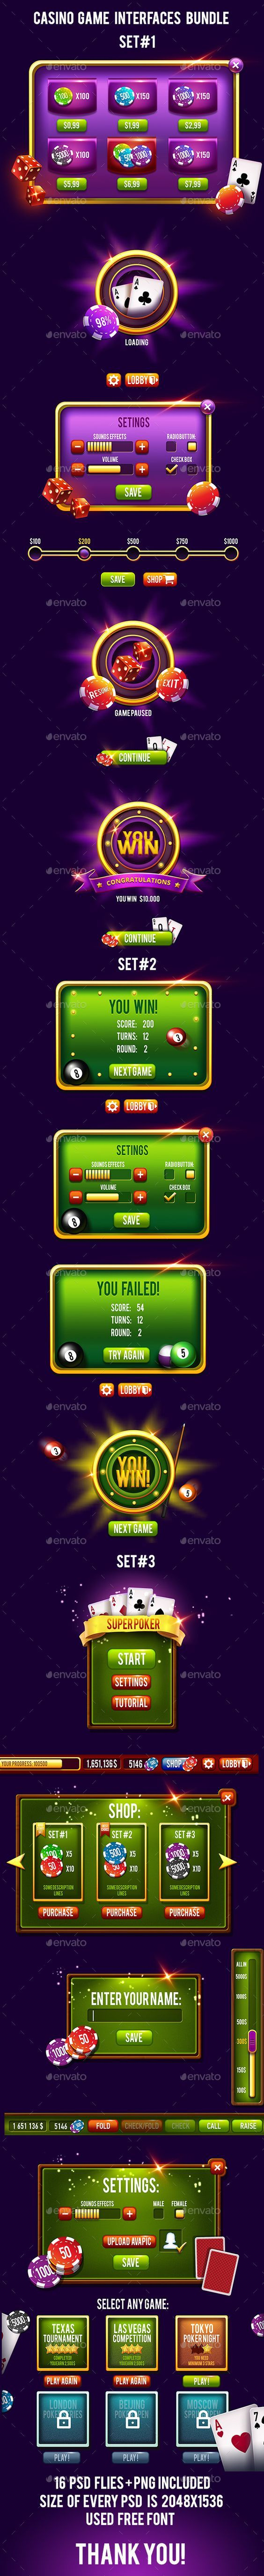 Casino Game Interface Bundle PSD, Transparent PNG. Download here: https://graphicriver.net/item/casino-game-interface-bundle/17506085?ref=ksioks: